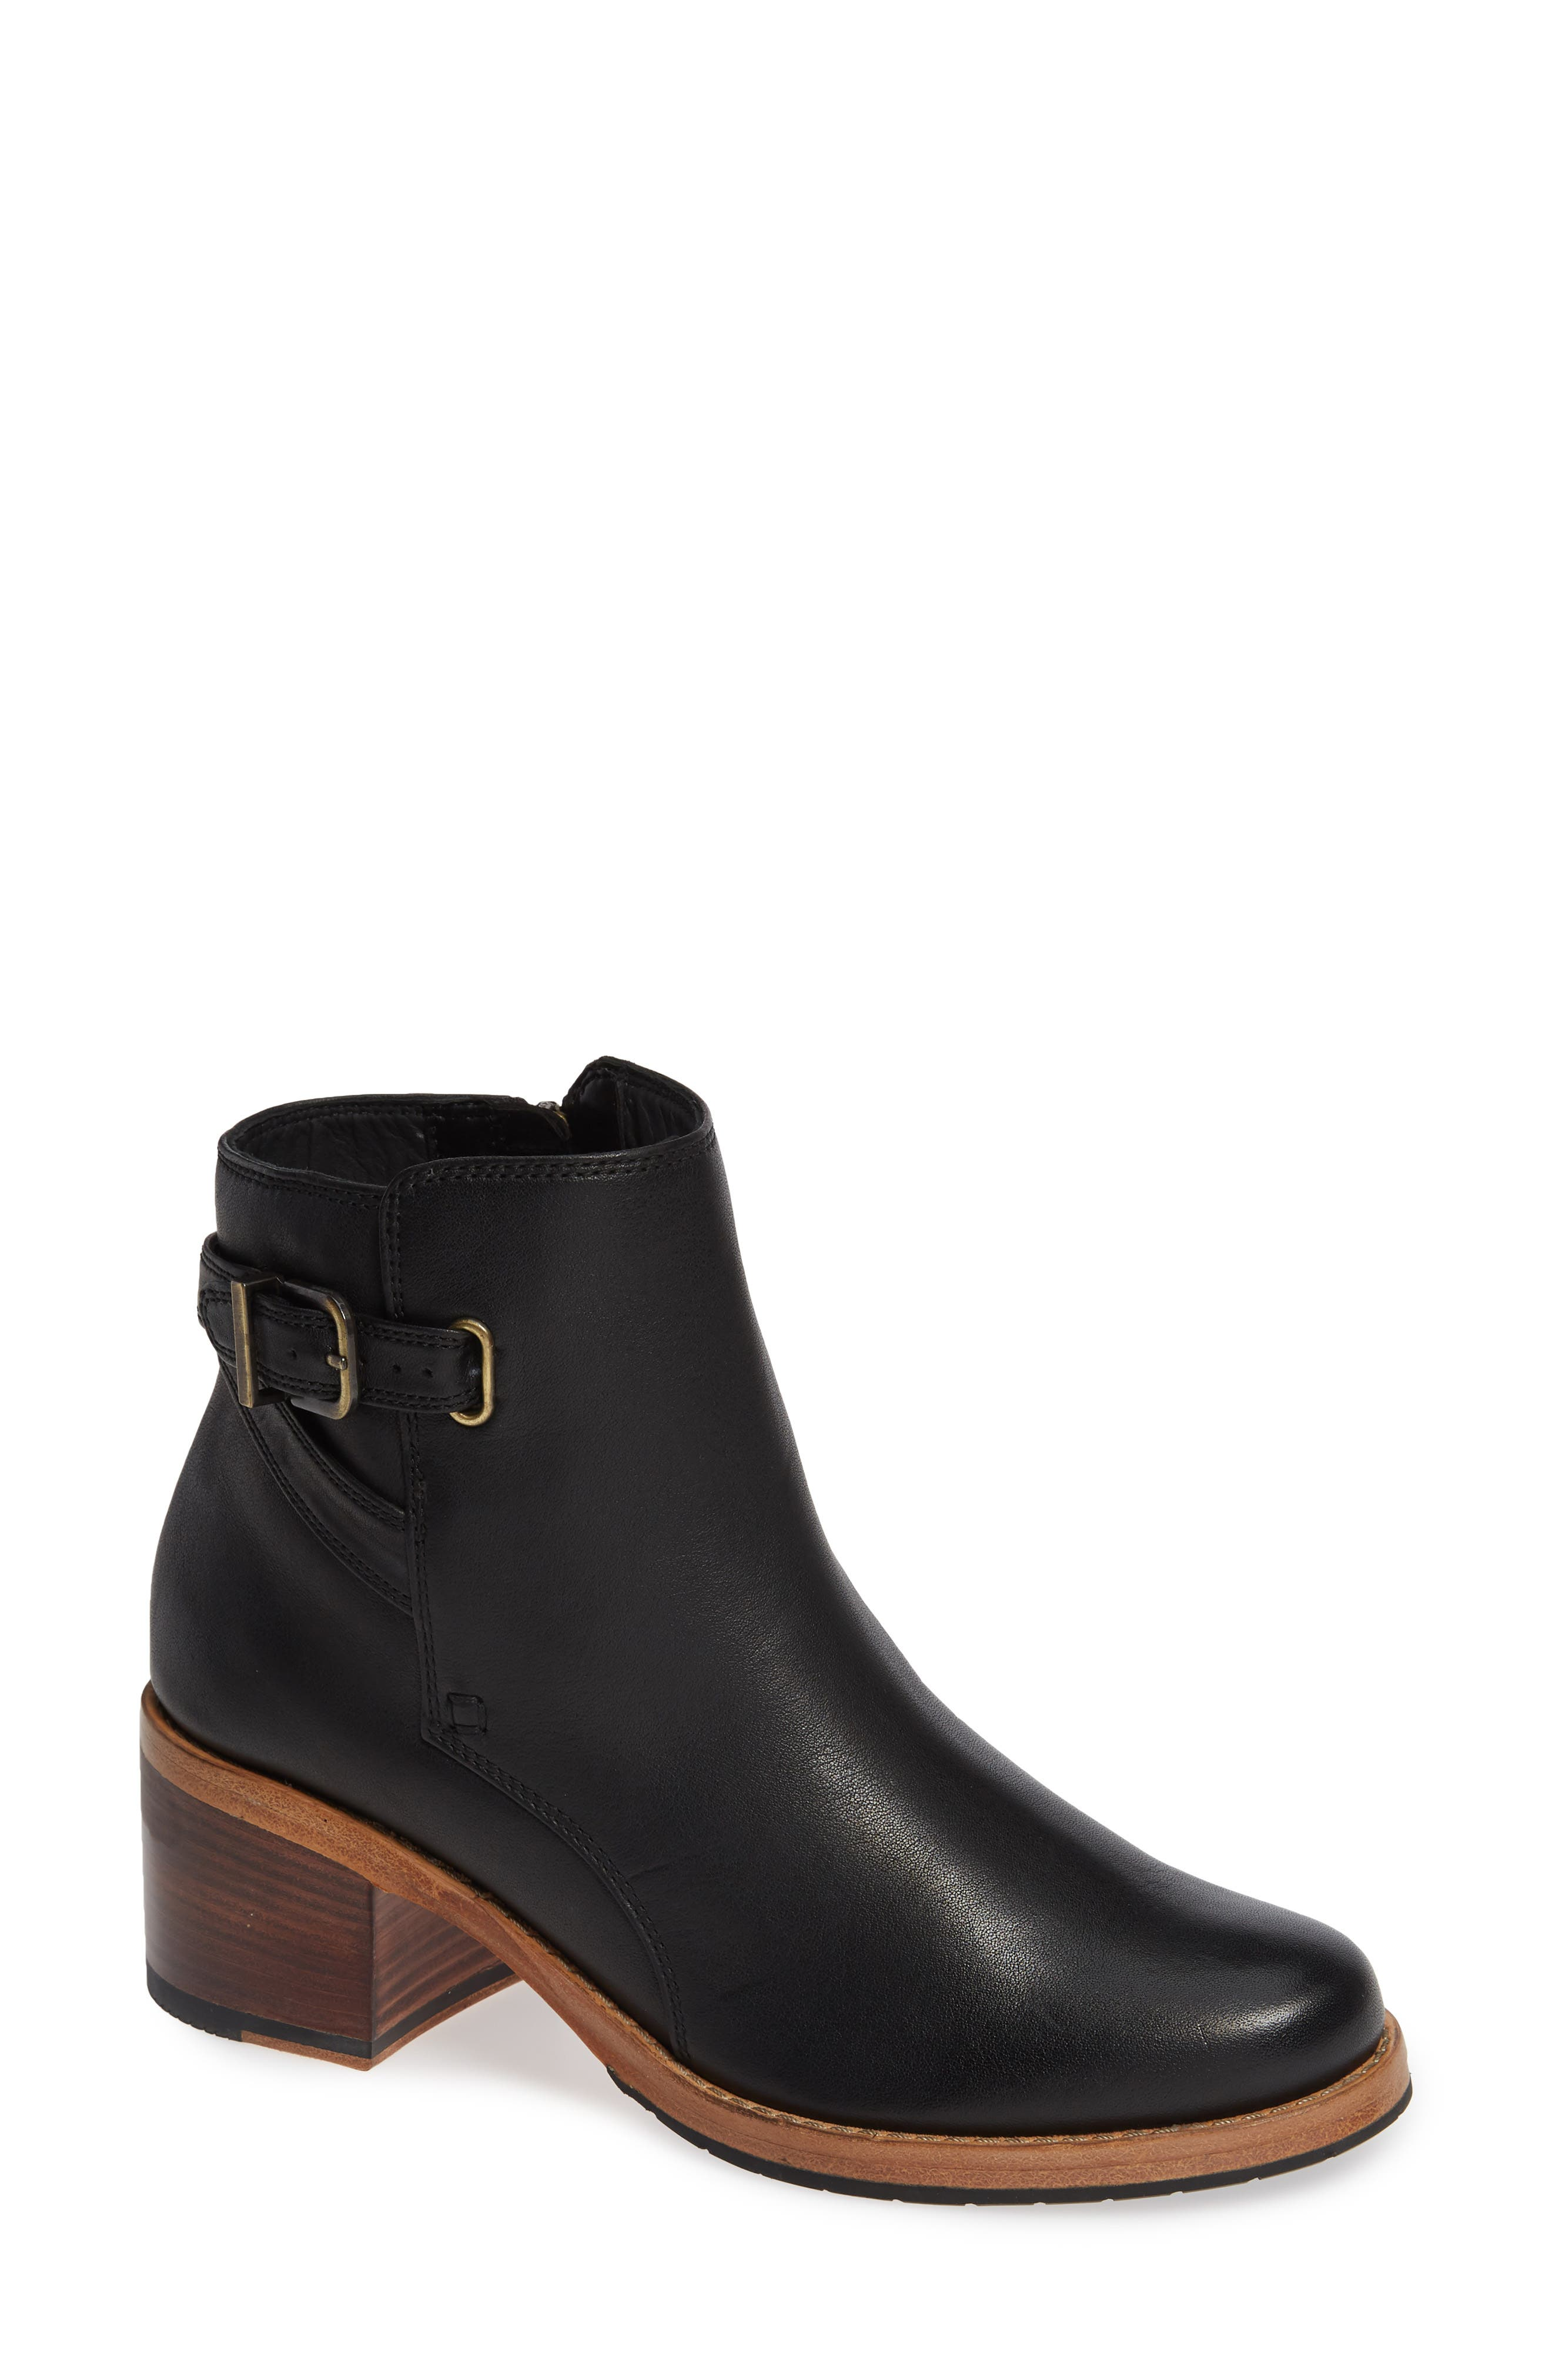 CLARKS<SUP>®</SUP>, Clarkdale Jax Bootie, Main thumbnail 1, color, BLACK LEATHER